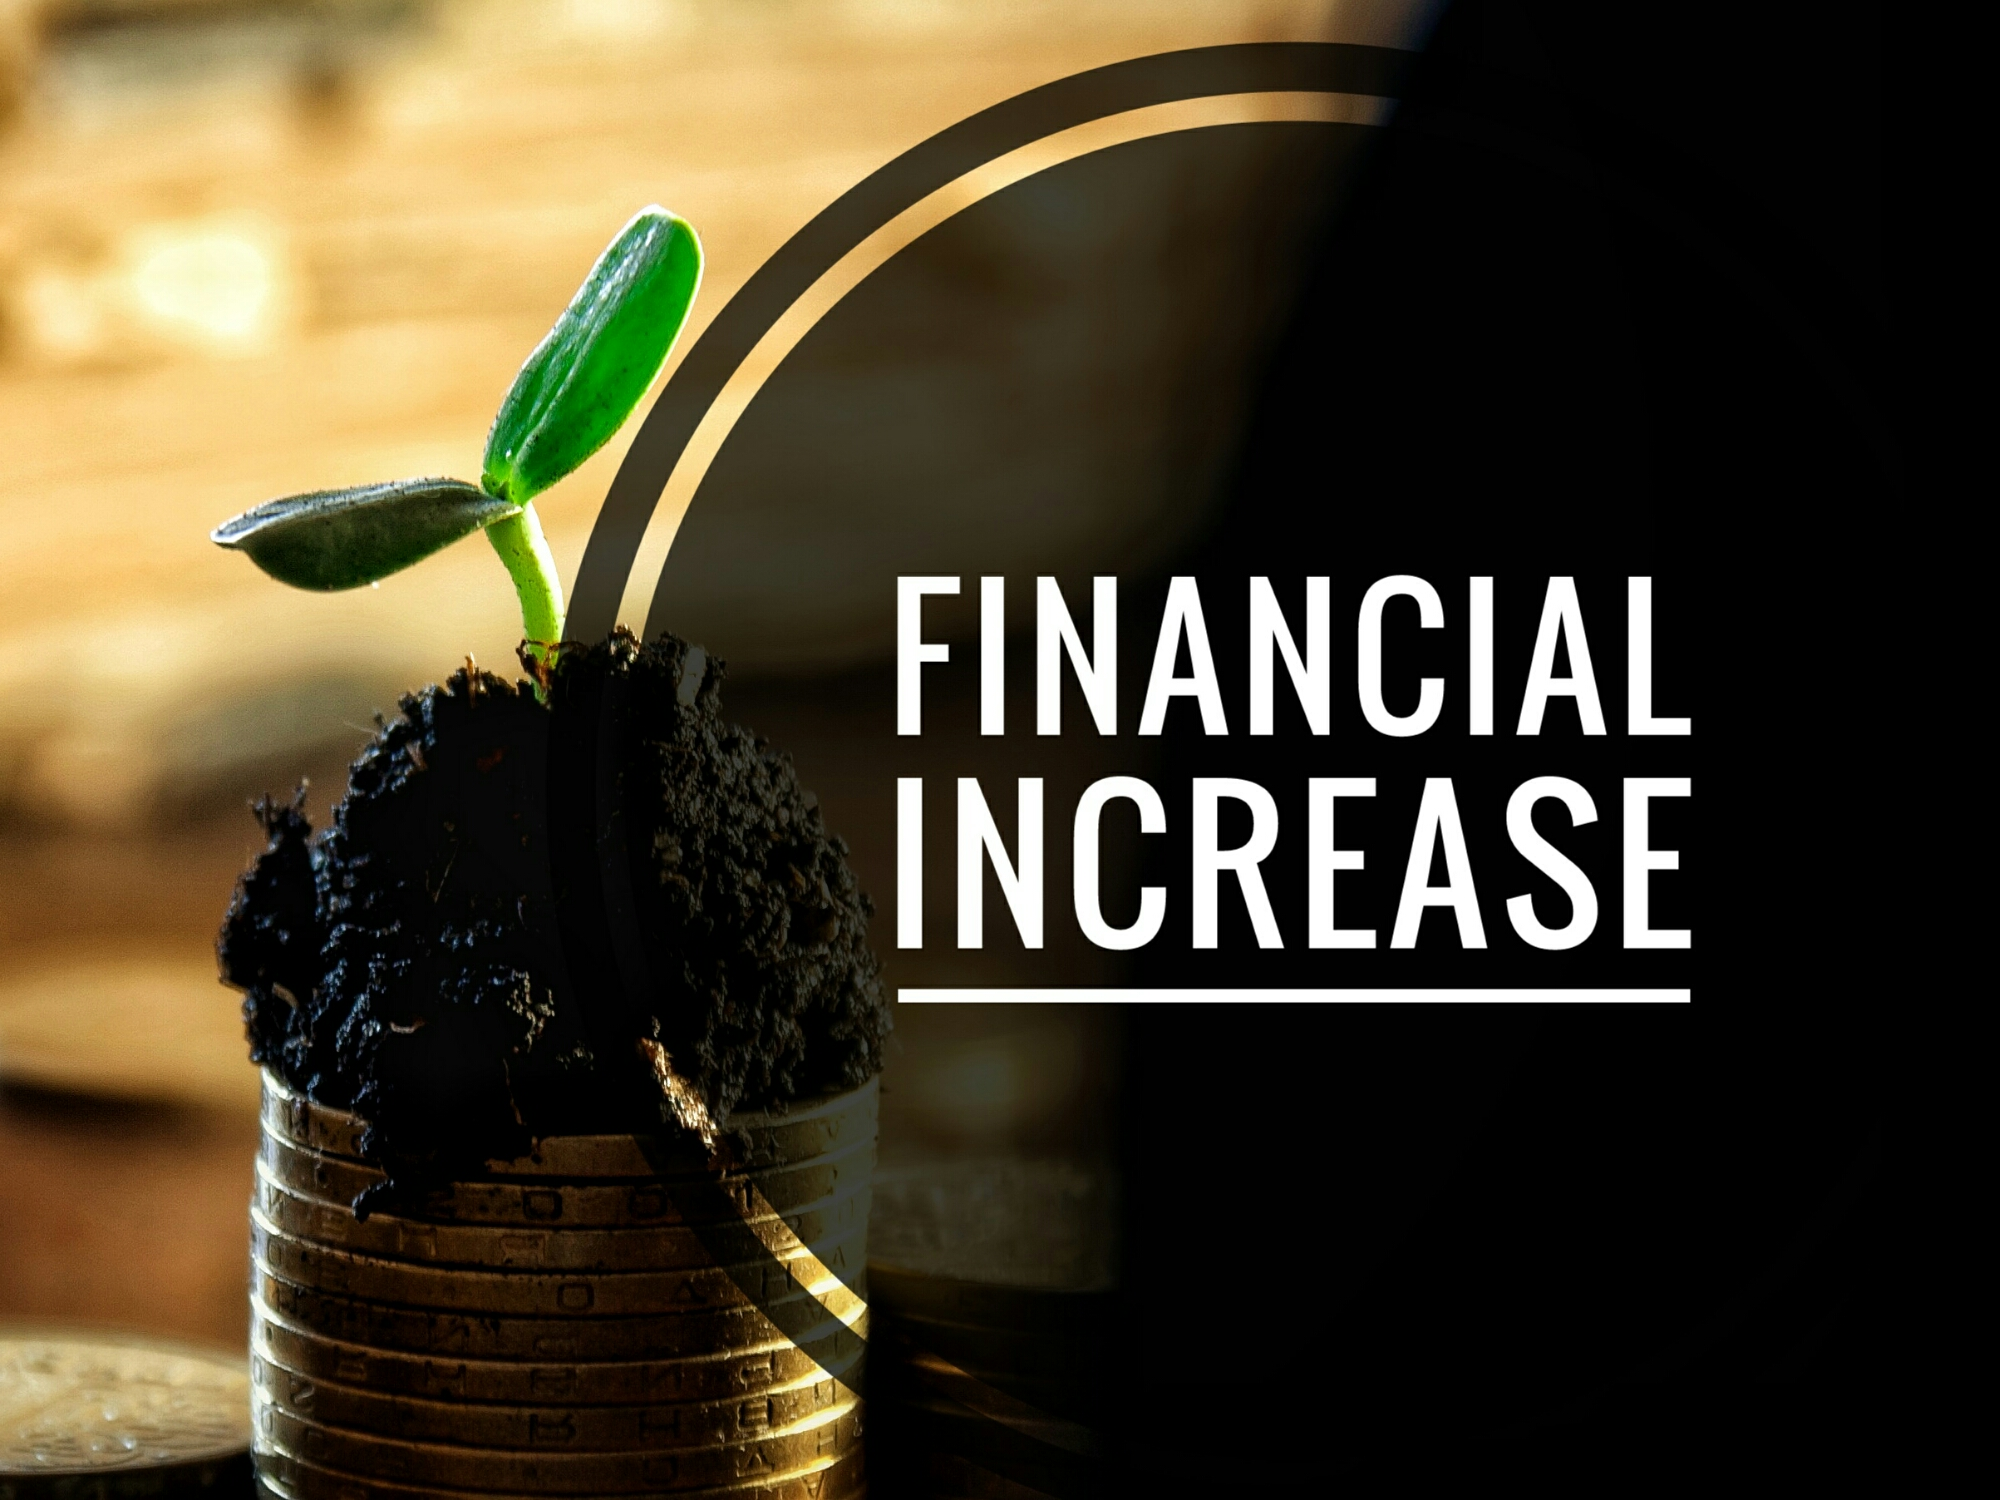 Financial Increase